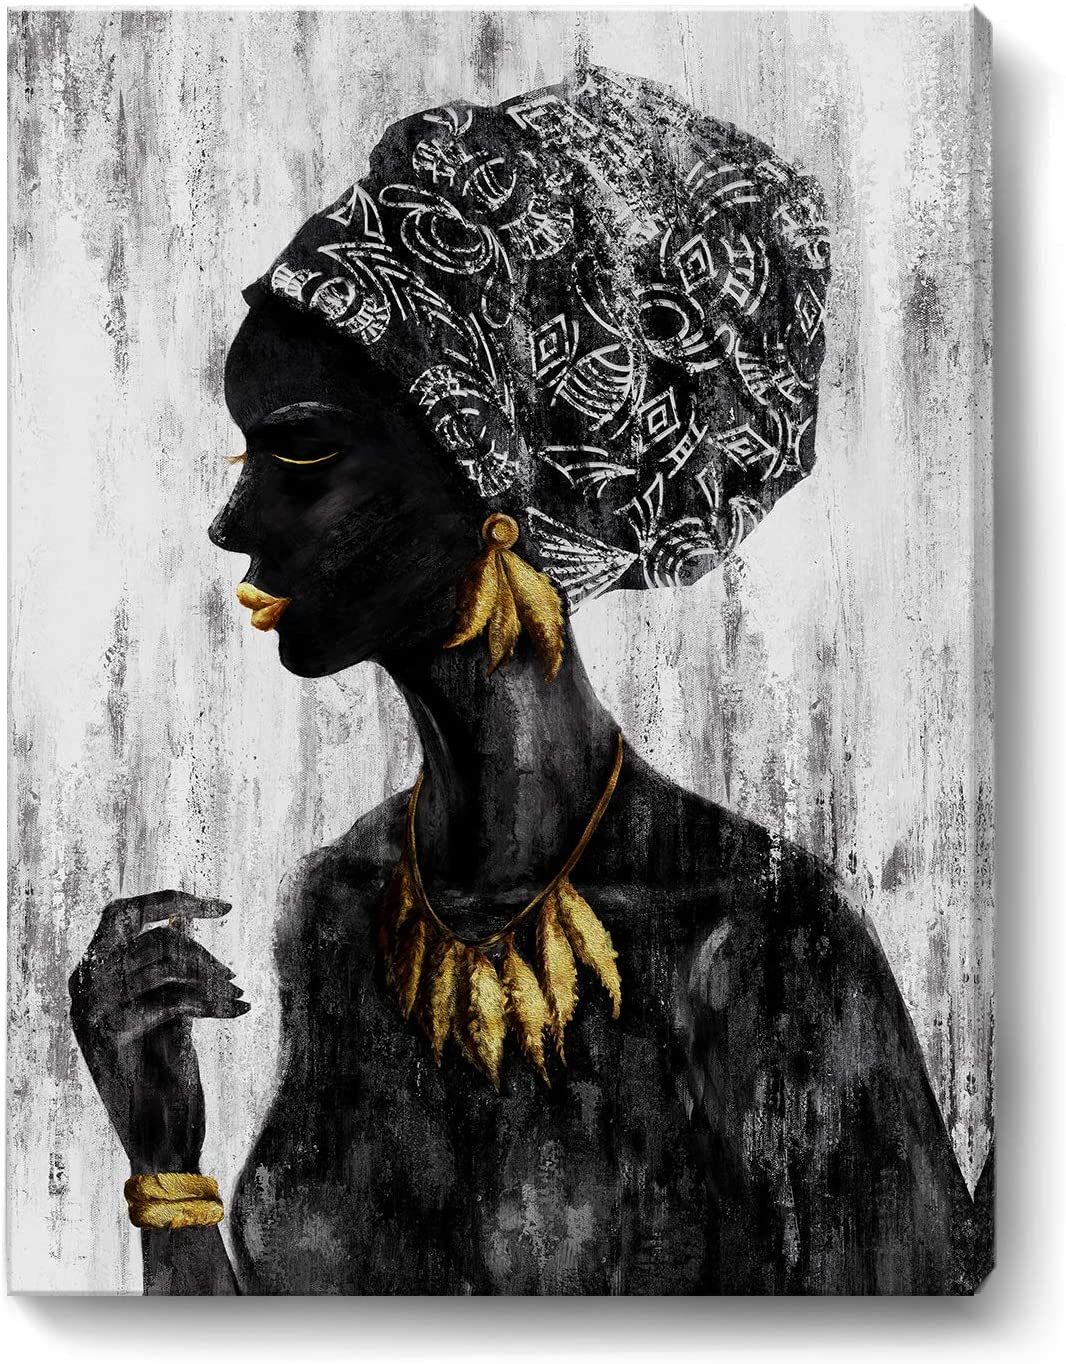 African American Wall Art Black and White Framed Retro Wall Picture Traditional Women Girl with Gold Accessories Canvas Print Tribal African Female Portrait Artwork for Home Bathroom Bedroom Vintage Décor 12x16inch